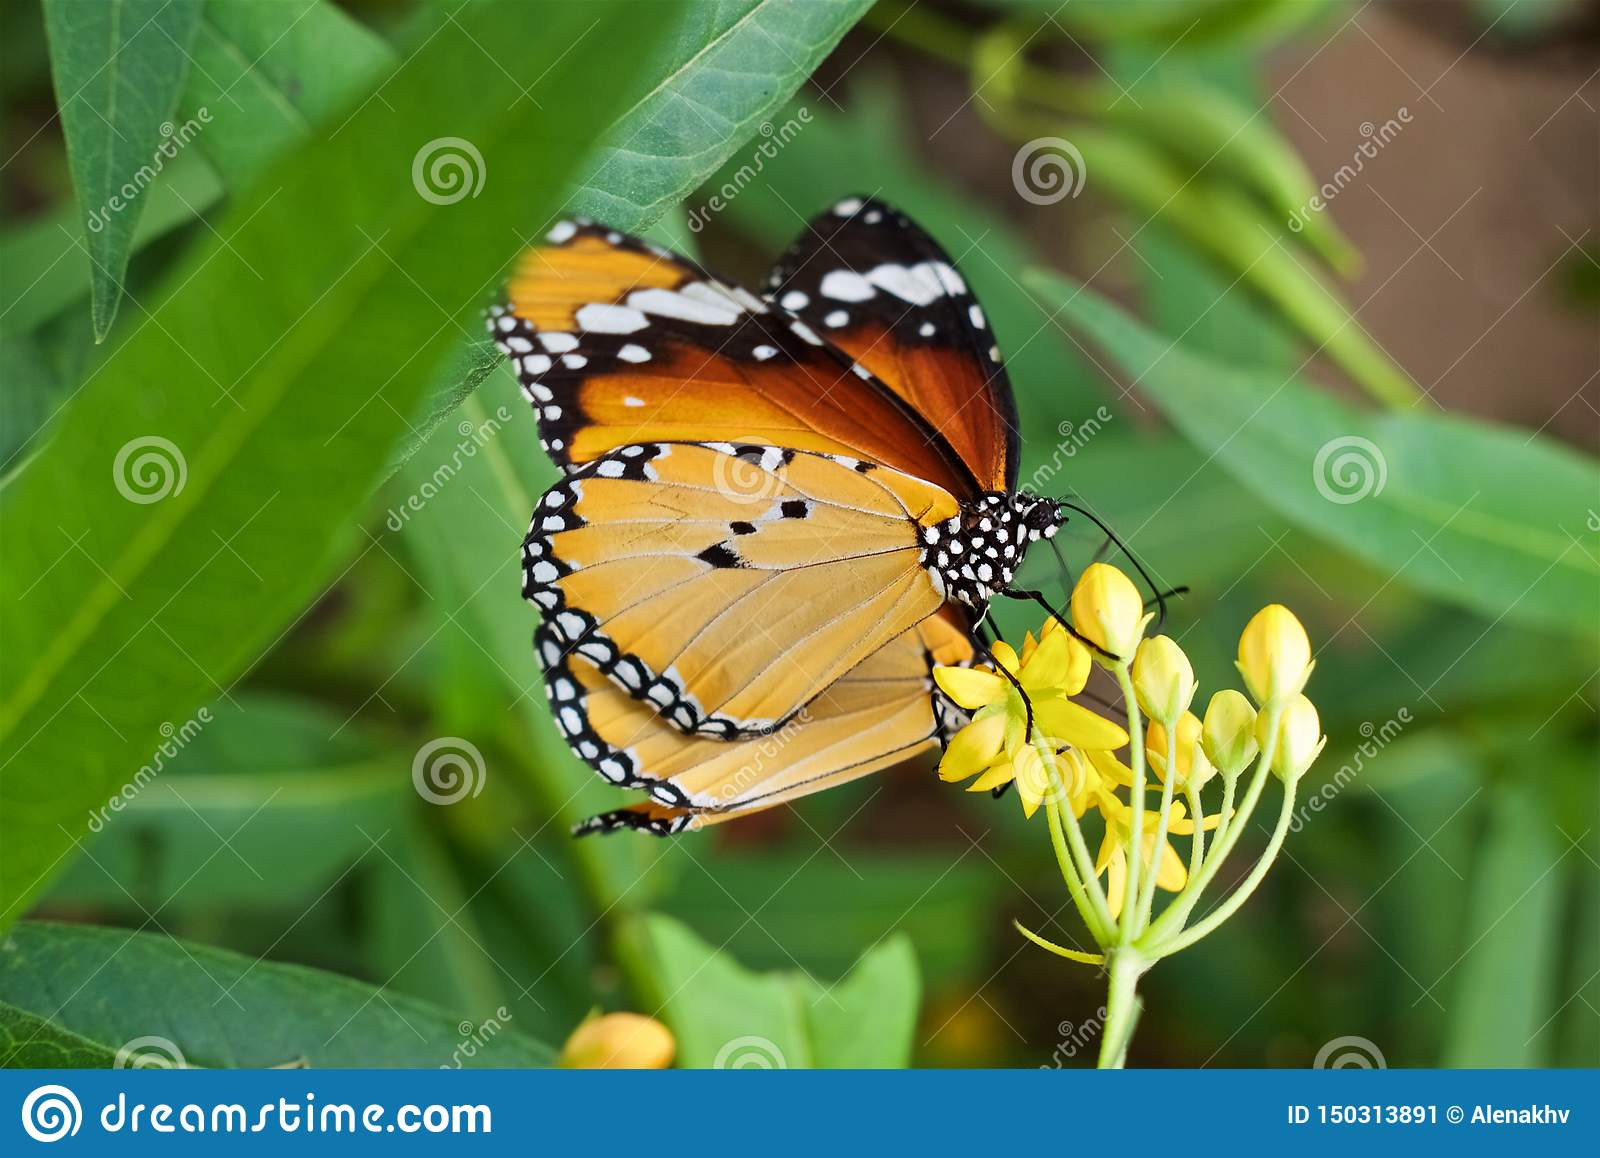 Close up Danaus chrysippus butterfly with yellow-orange wings sits on a yellow flower